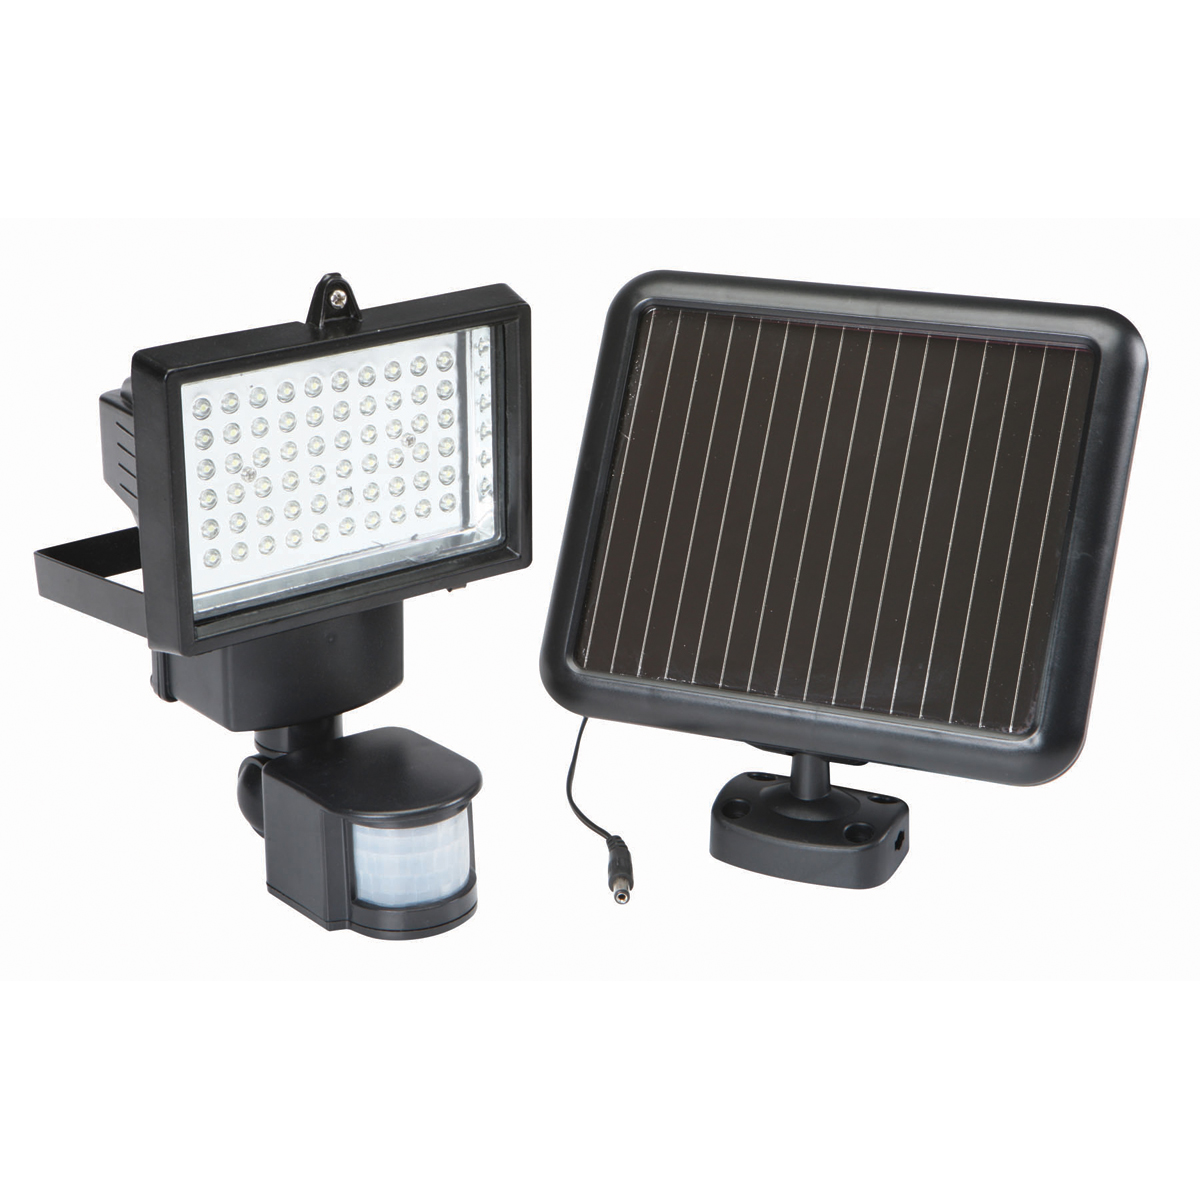 sc 1 st  Harbor Freight : cheap security lights outdoor - www.canuckmediamonitor.org